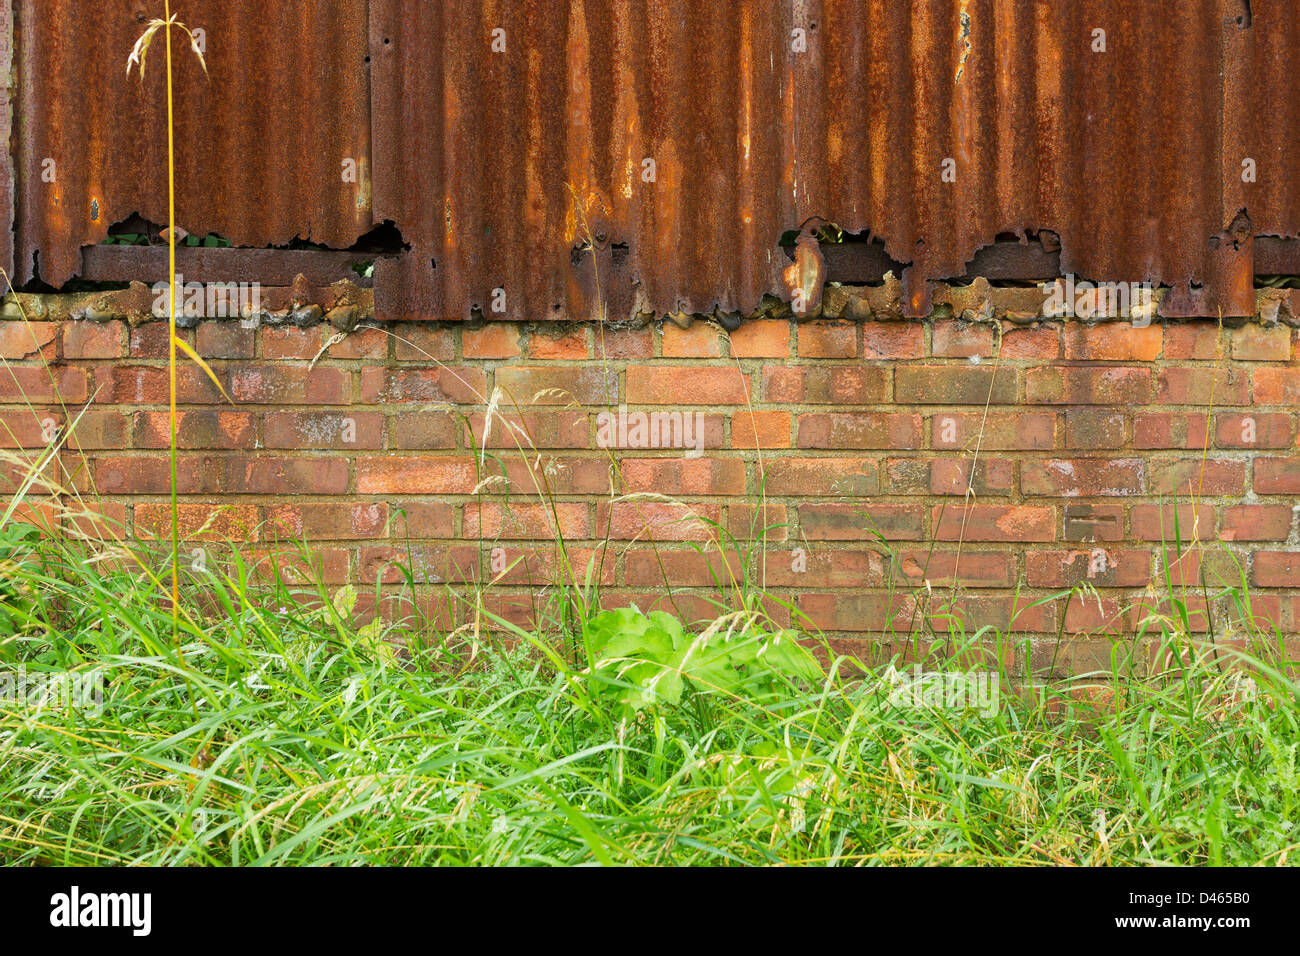 Background of rusty corrugated iron and brick wall in front of grass and weeds - Stock Image